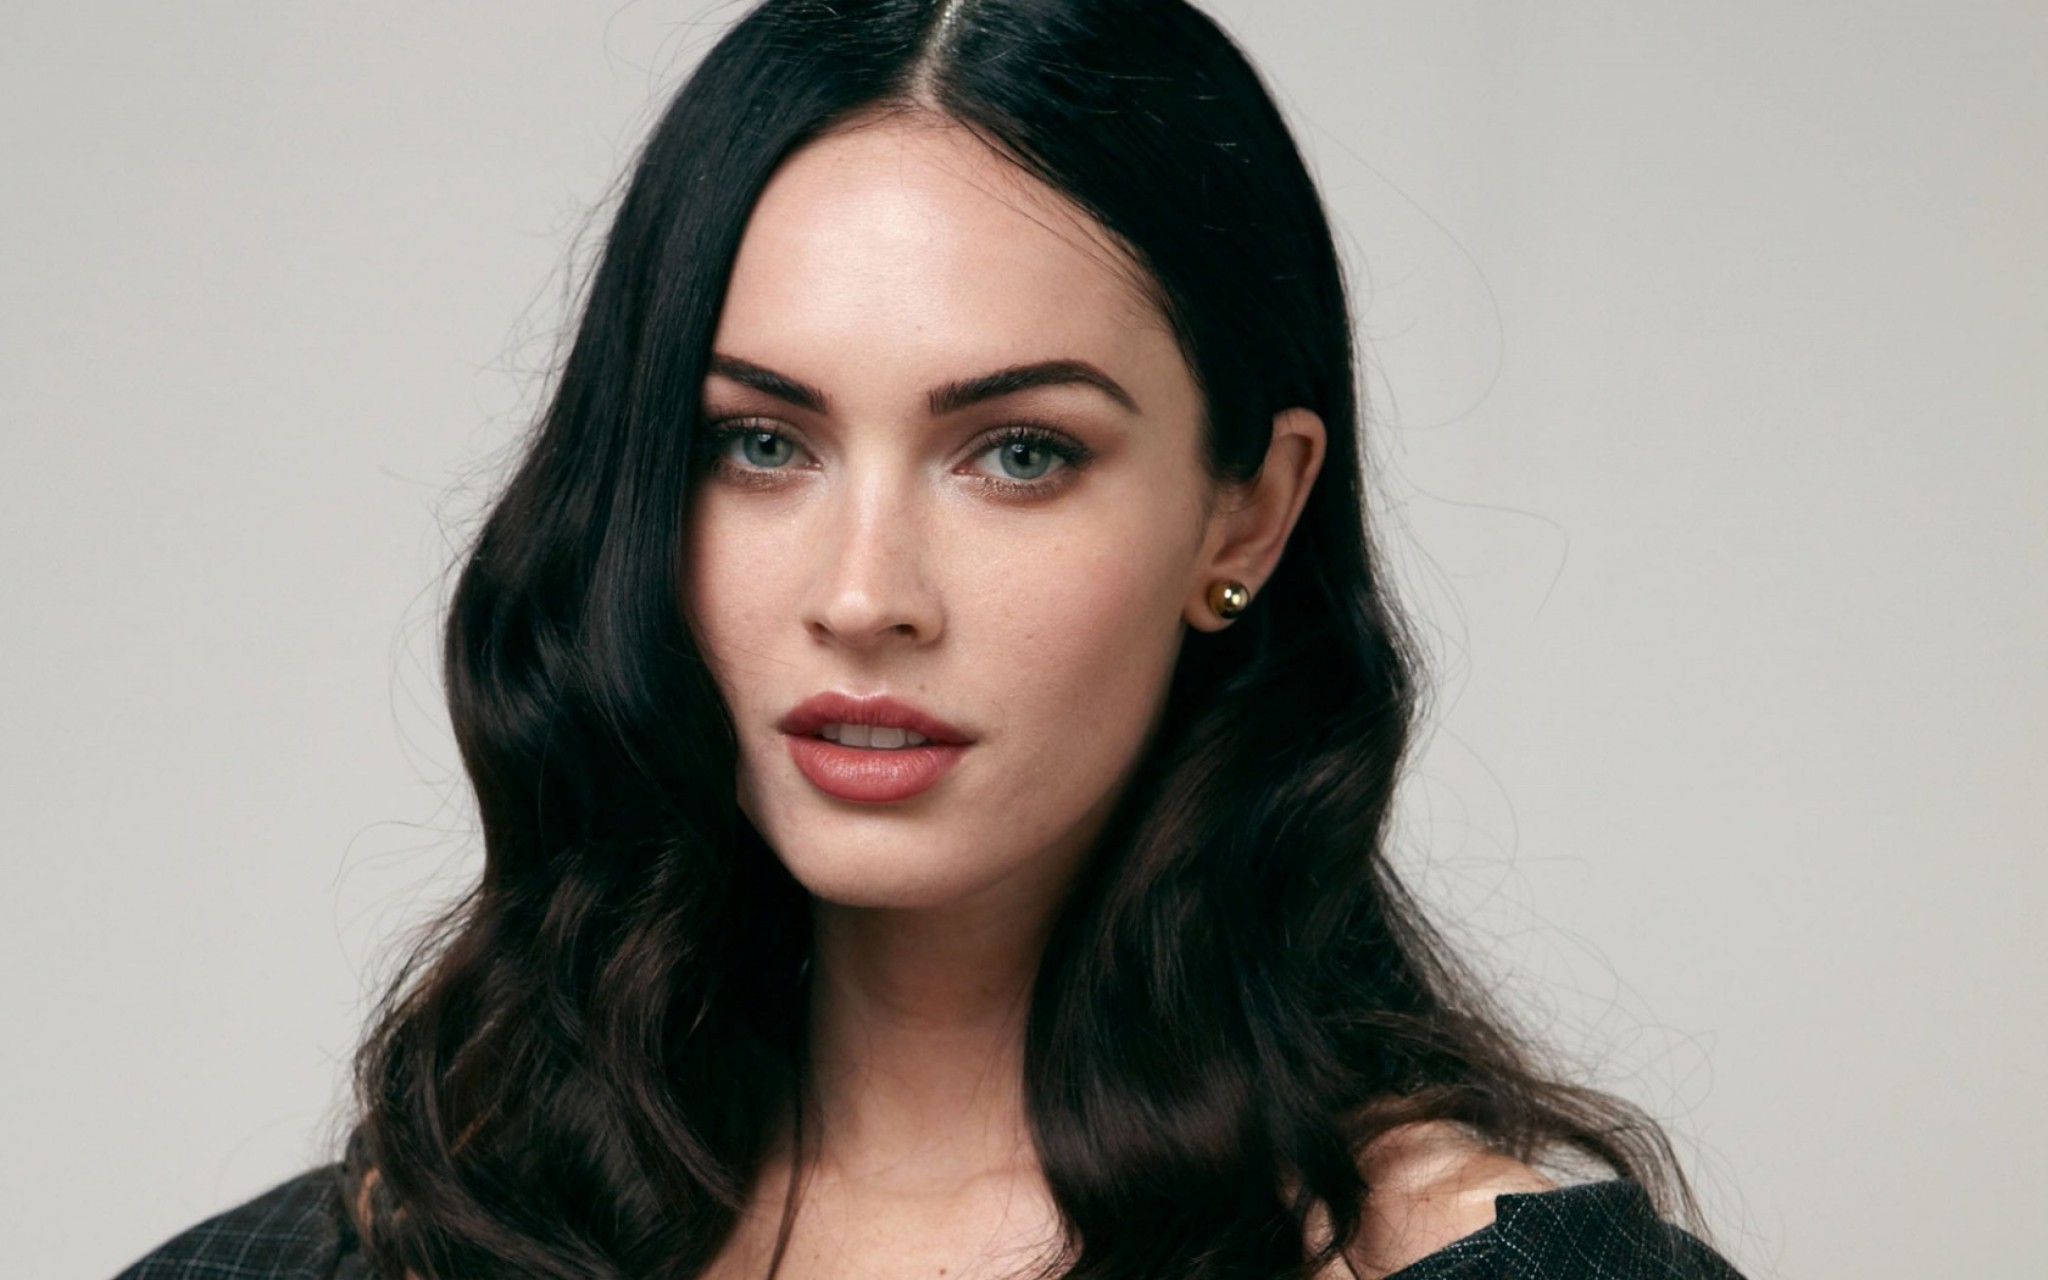 megan_fox_black_hair_makeup_actress_104379_3840x2400